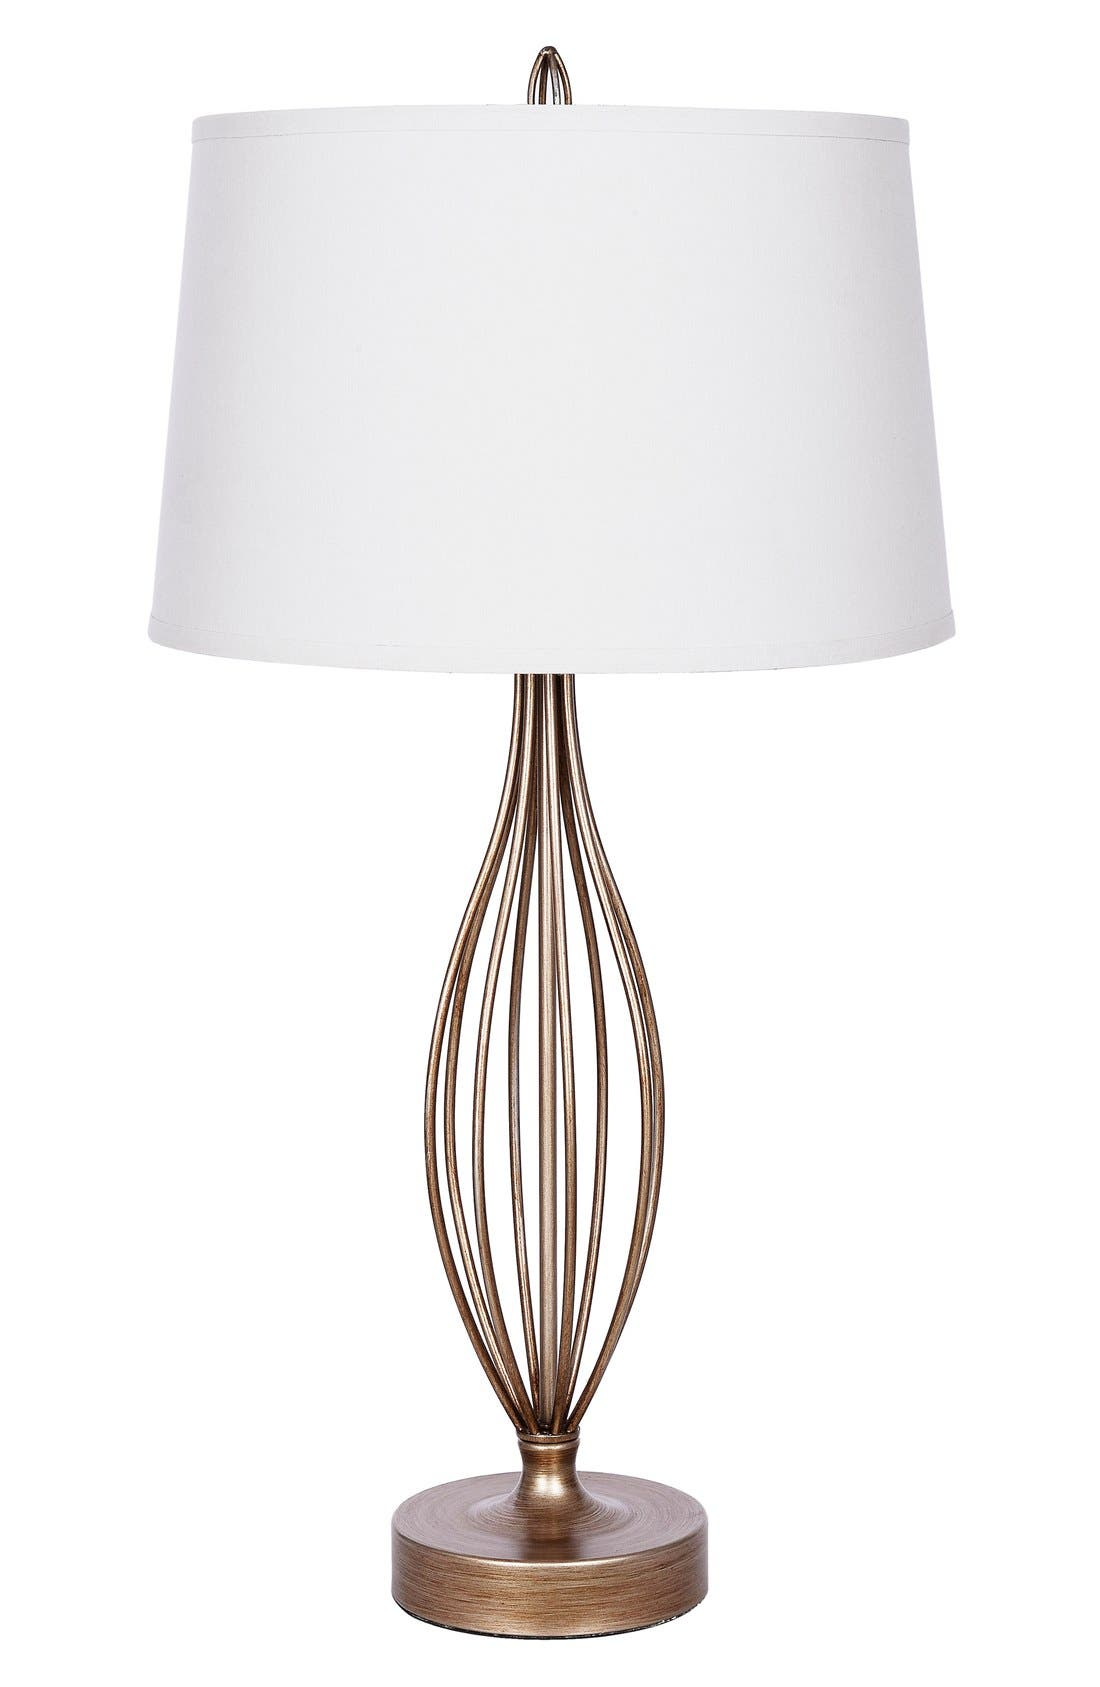 Alternate Image 1 Selected - JAlexander Tessa Metal Table Lamp